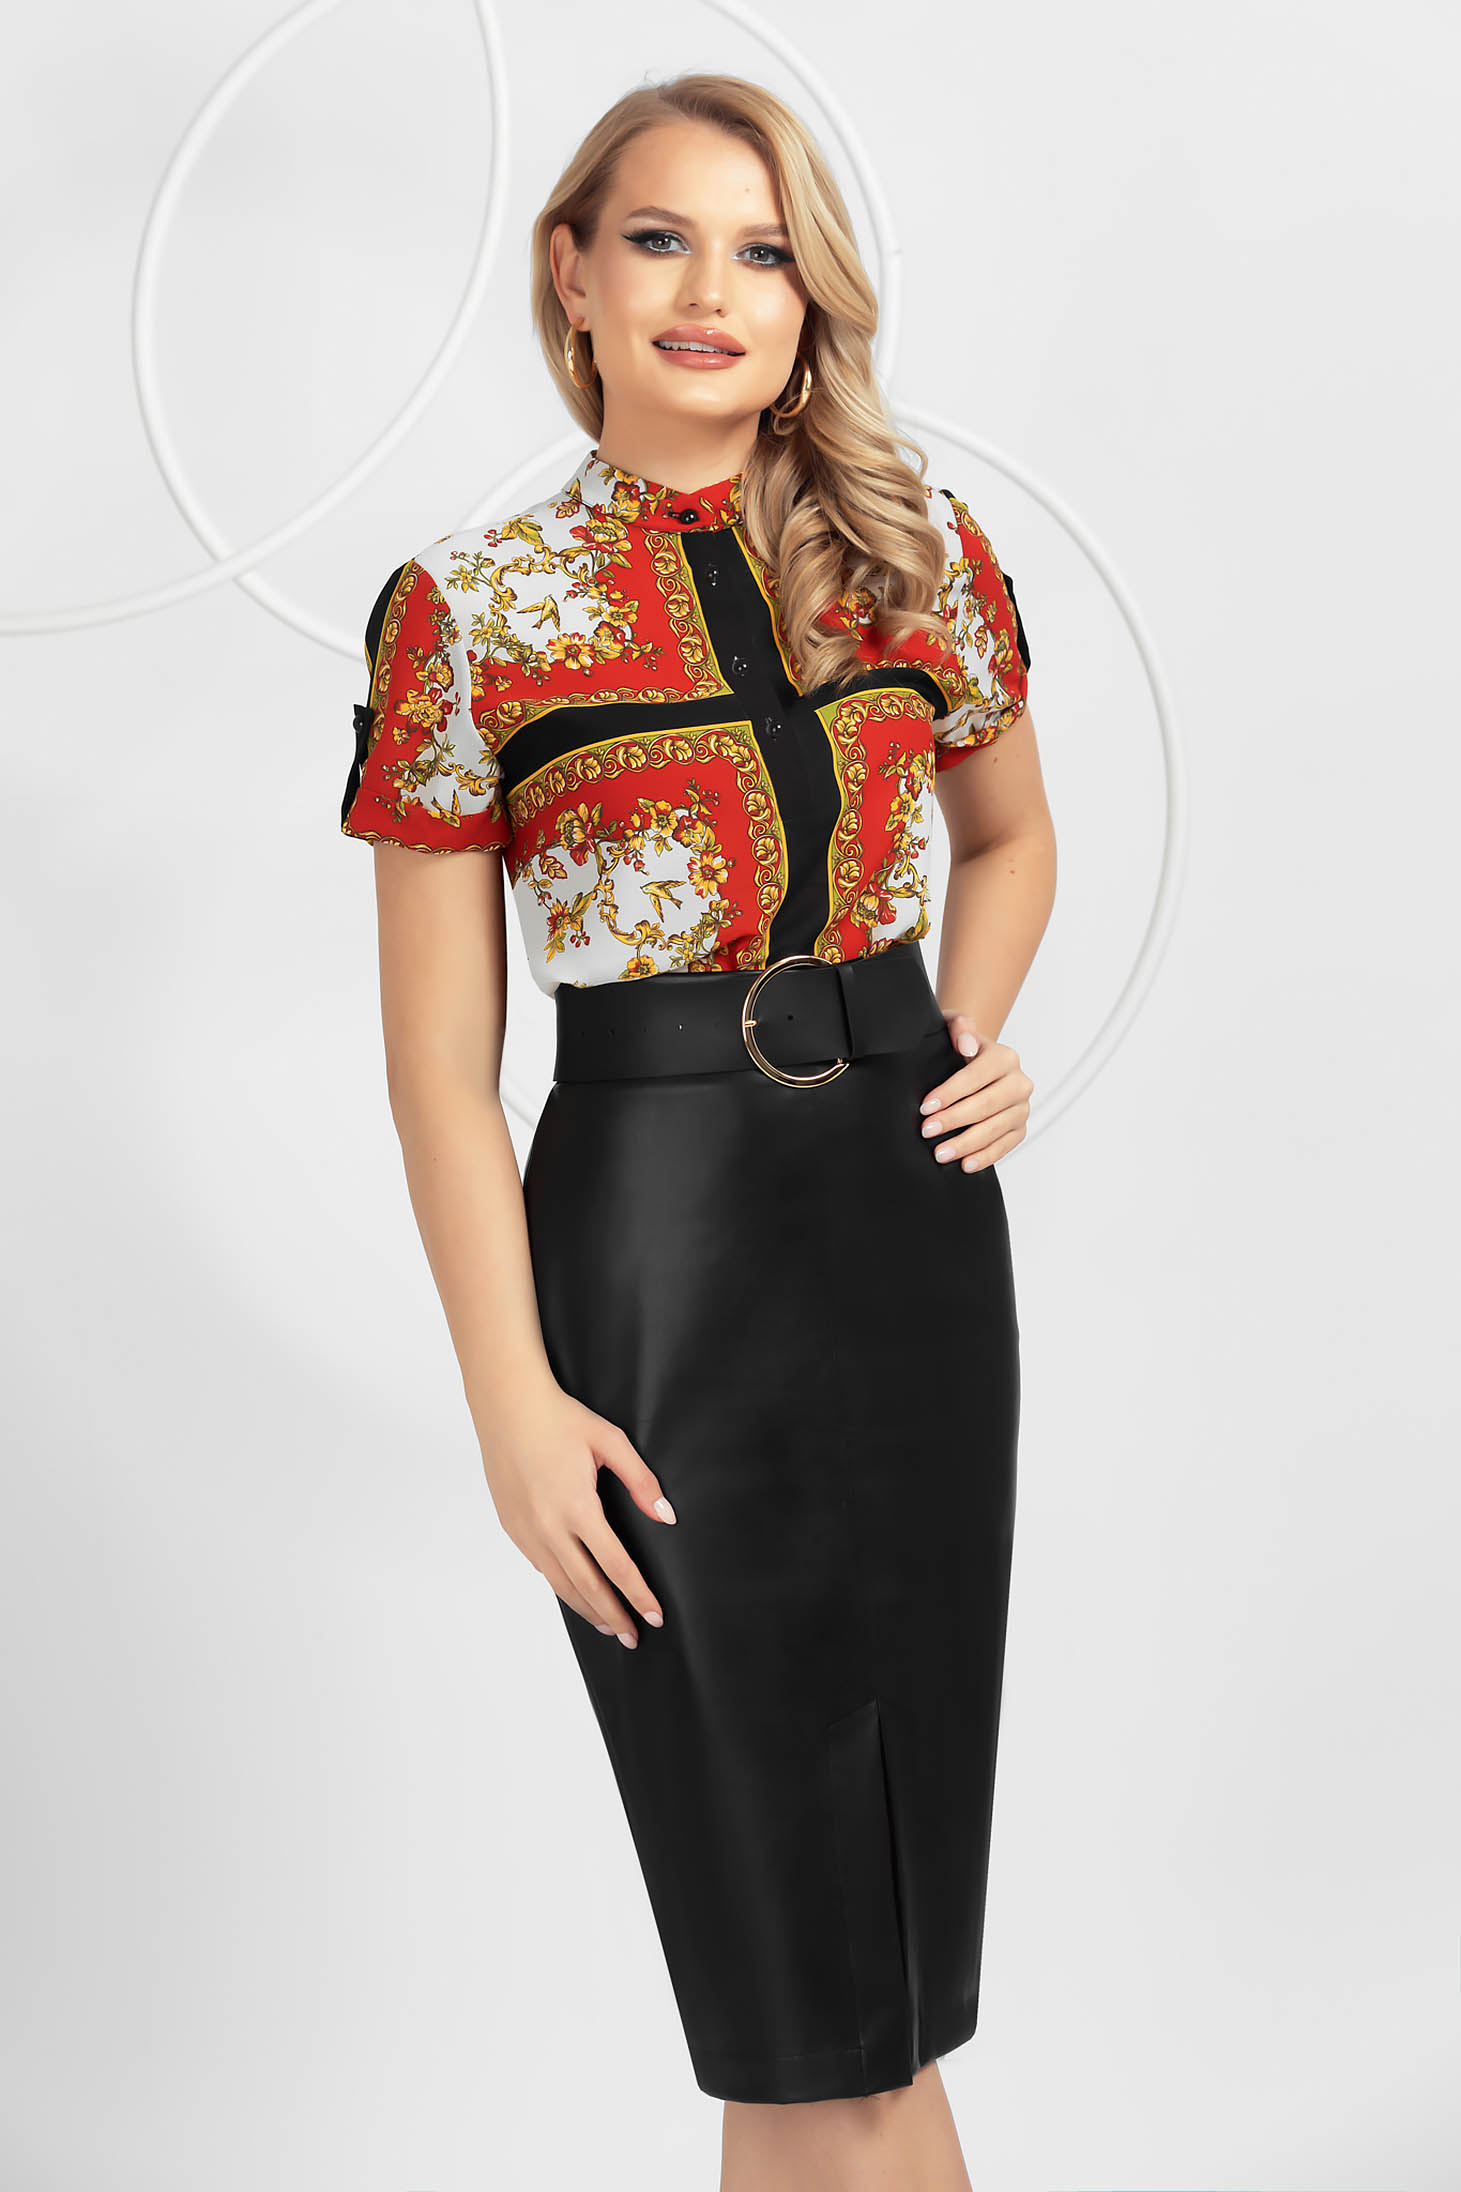 Black from ecological leather midi pencil skirt accessorized with belt frontal slit